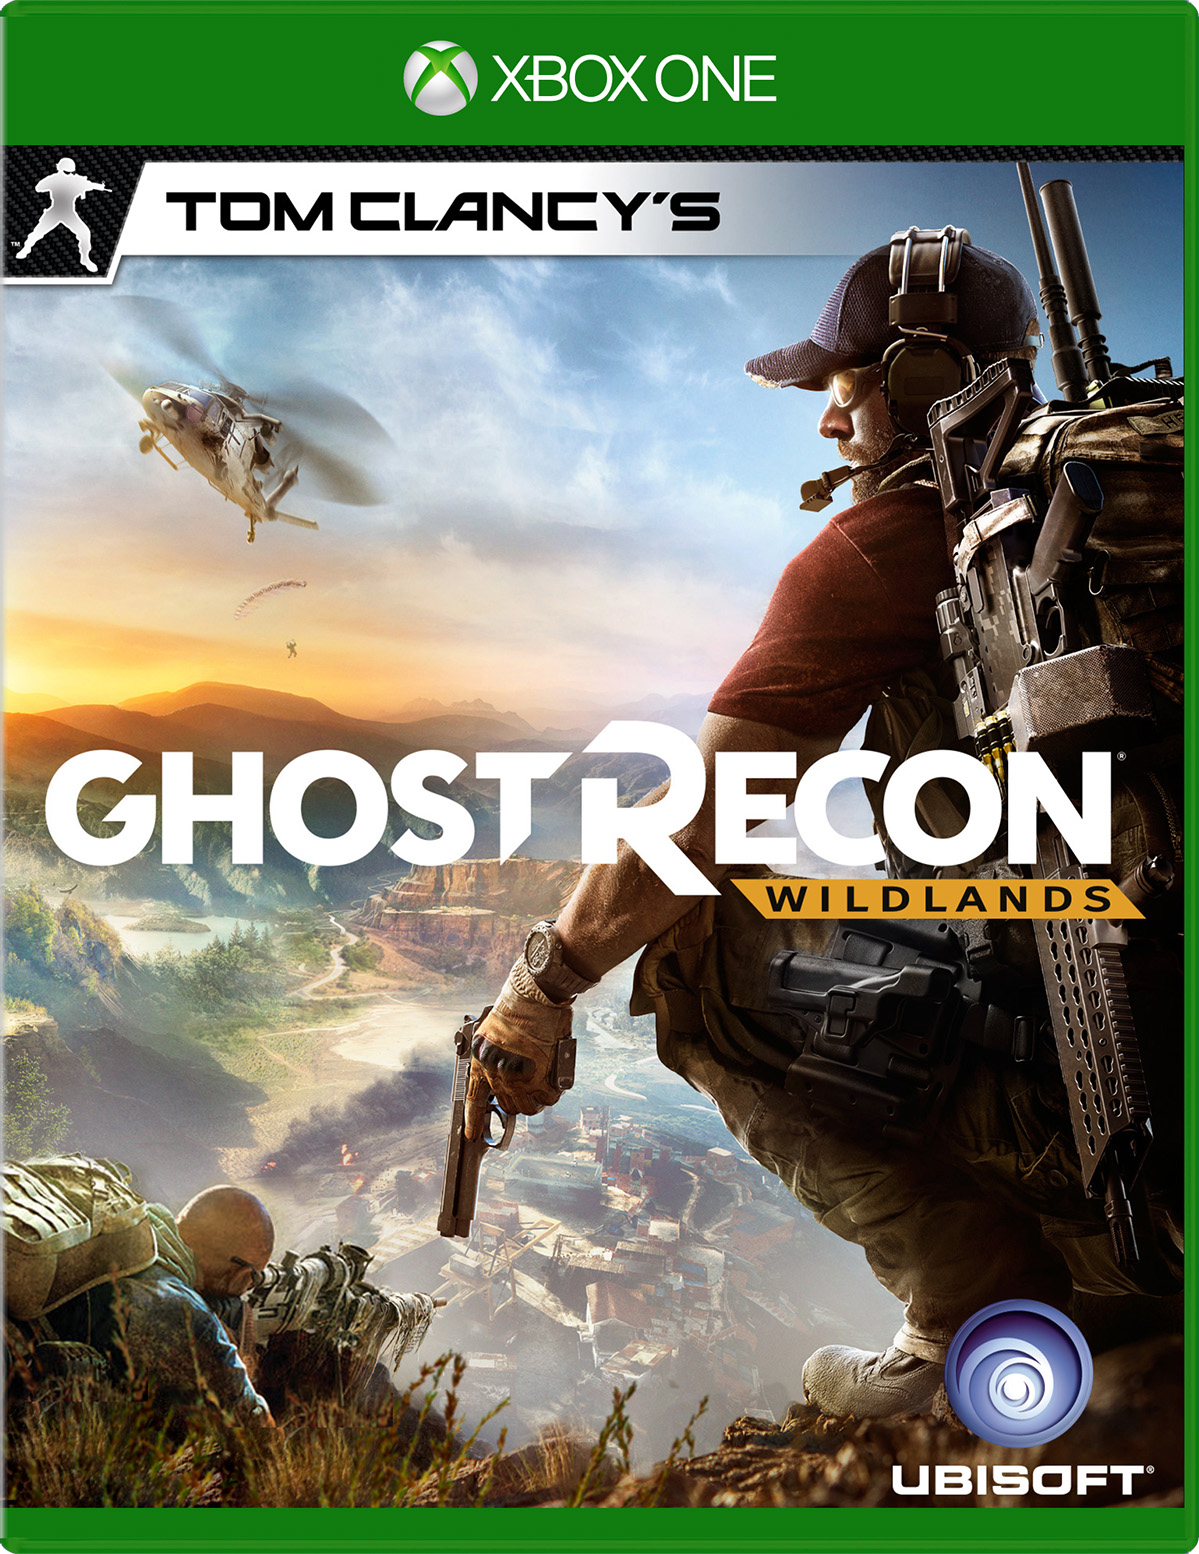 Tom Clancy's Ghost Recon Wildlands for Xbox One